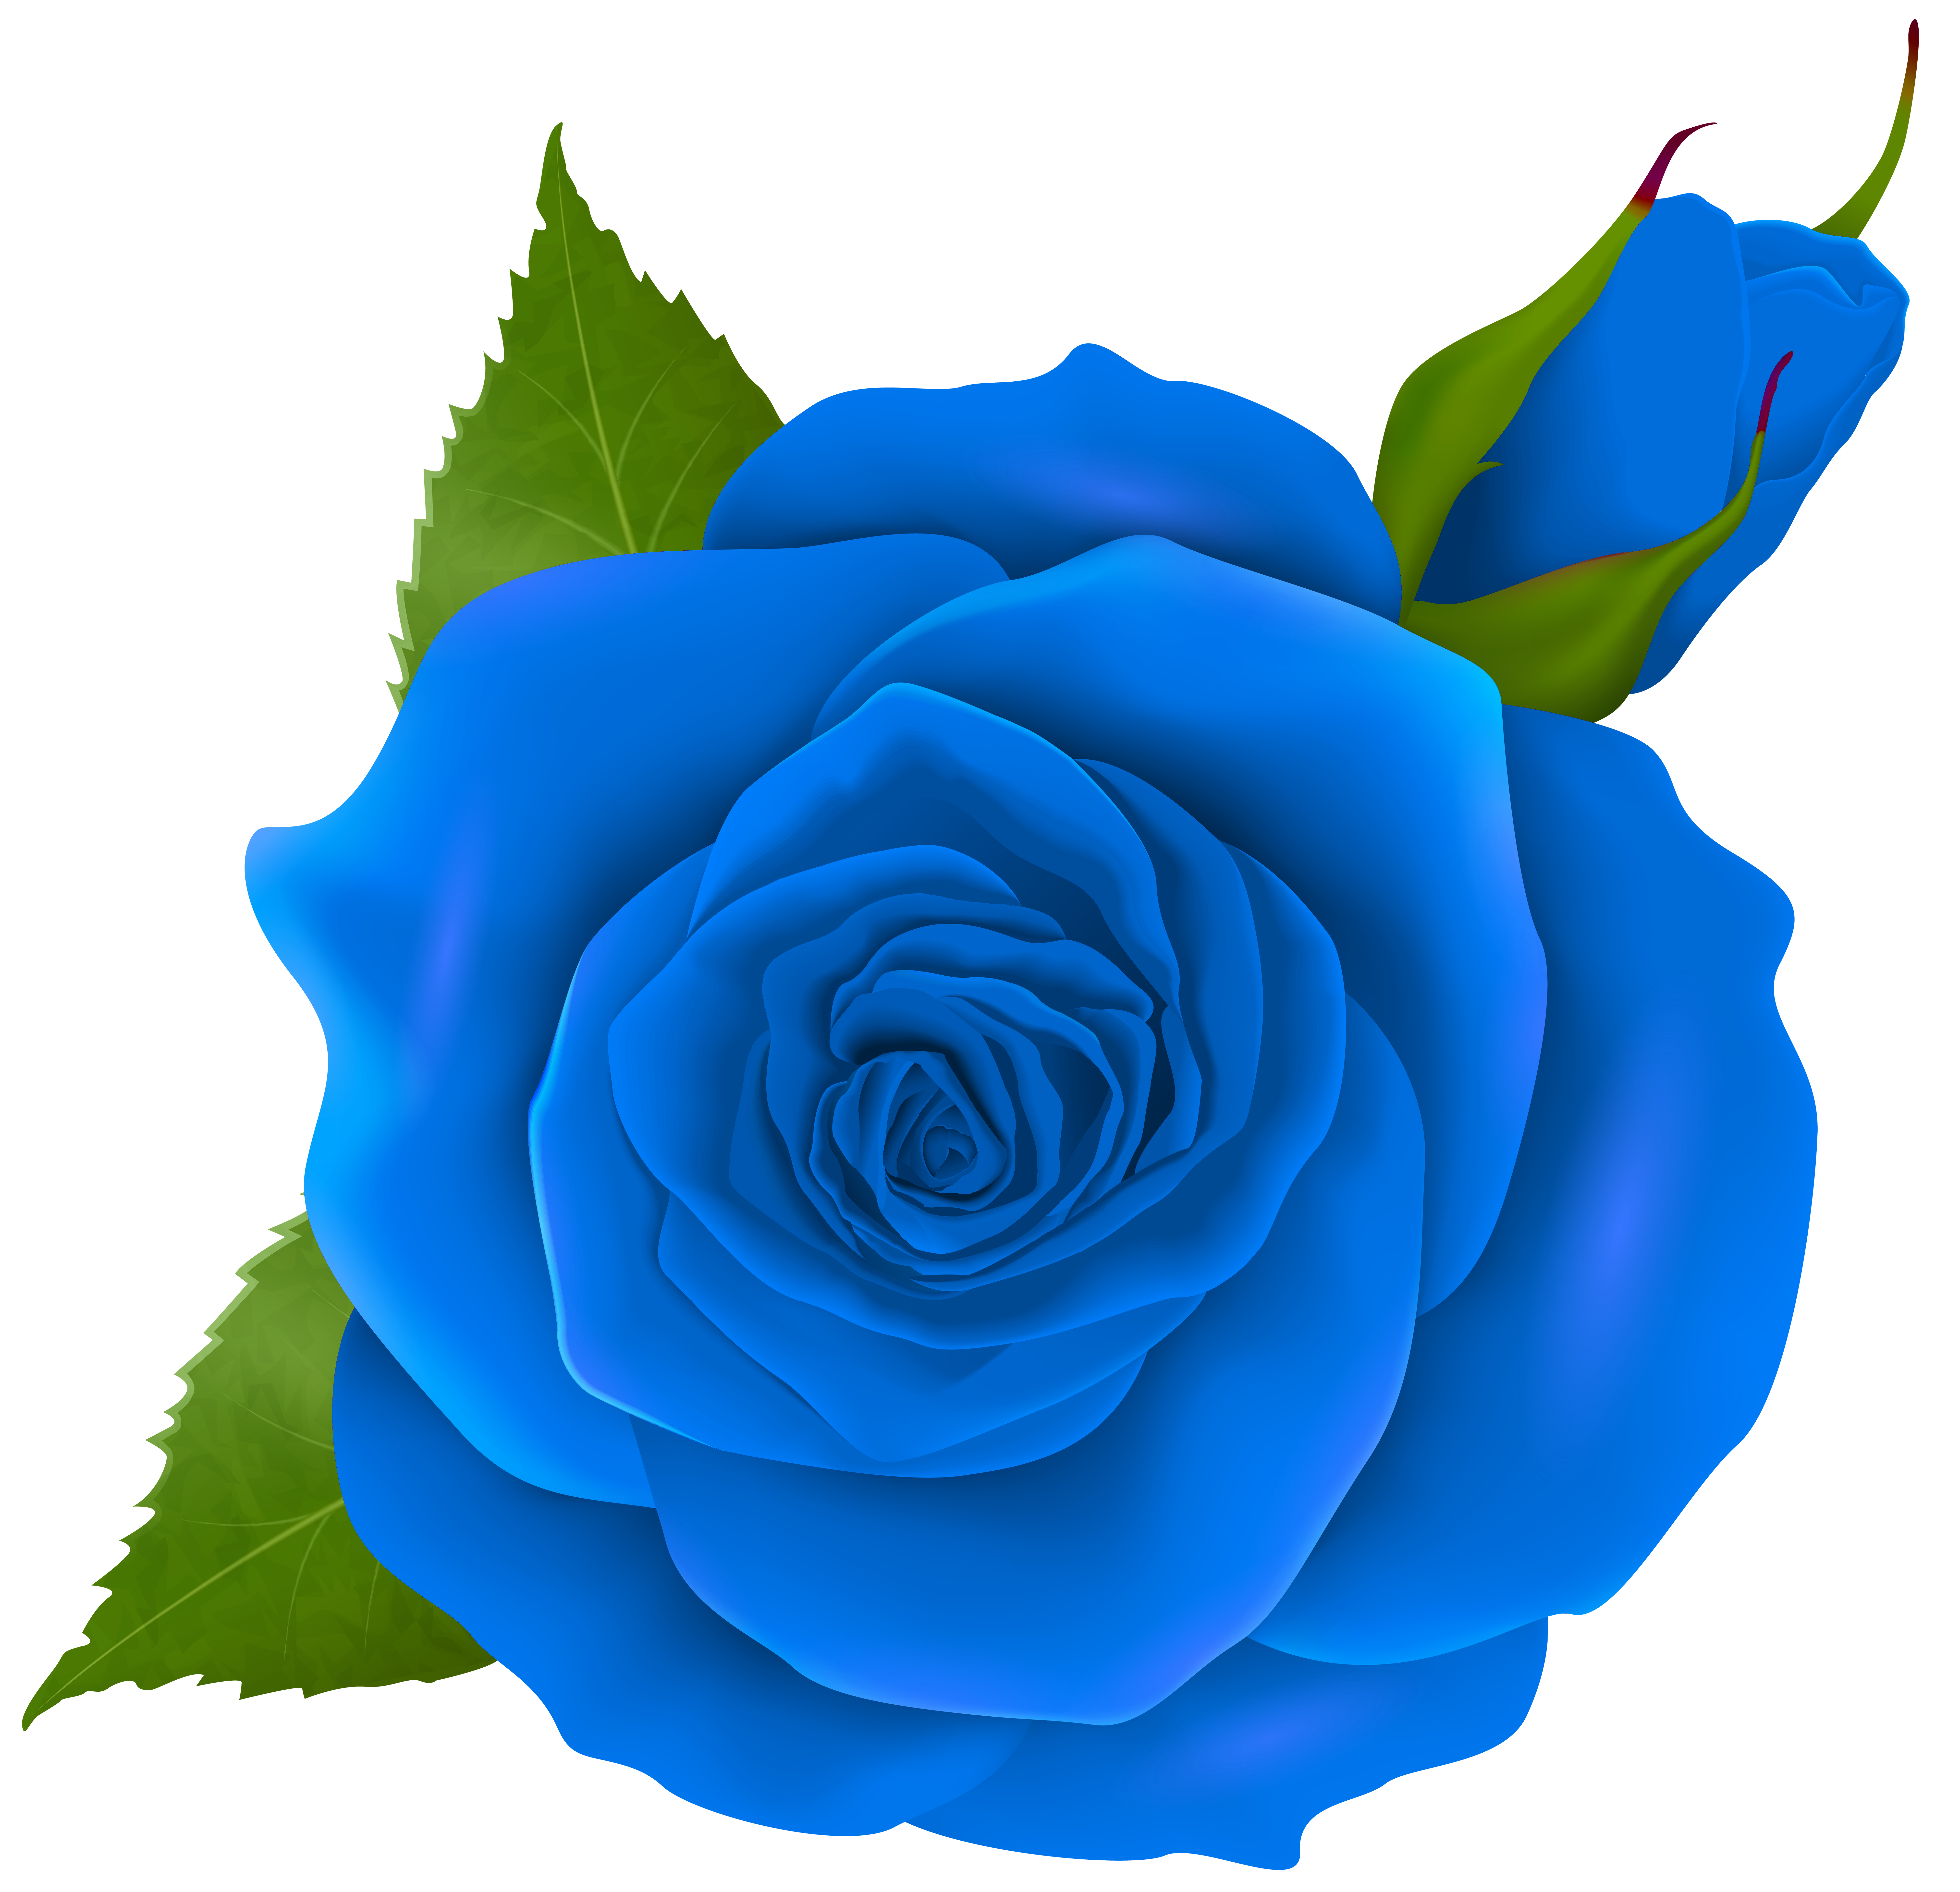 Blue rose png. And bud transparent clip